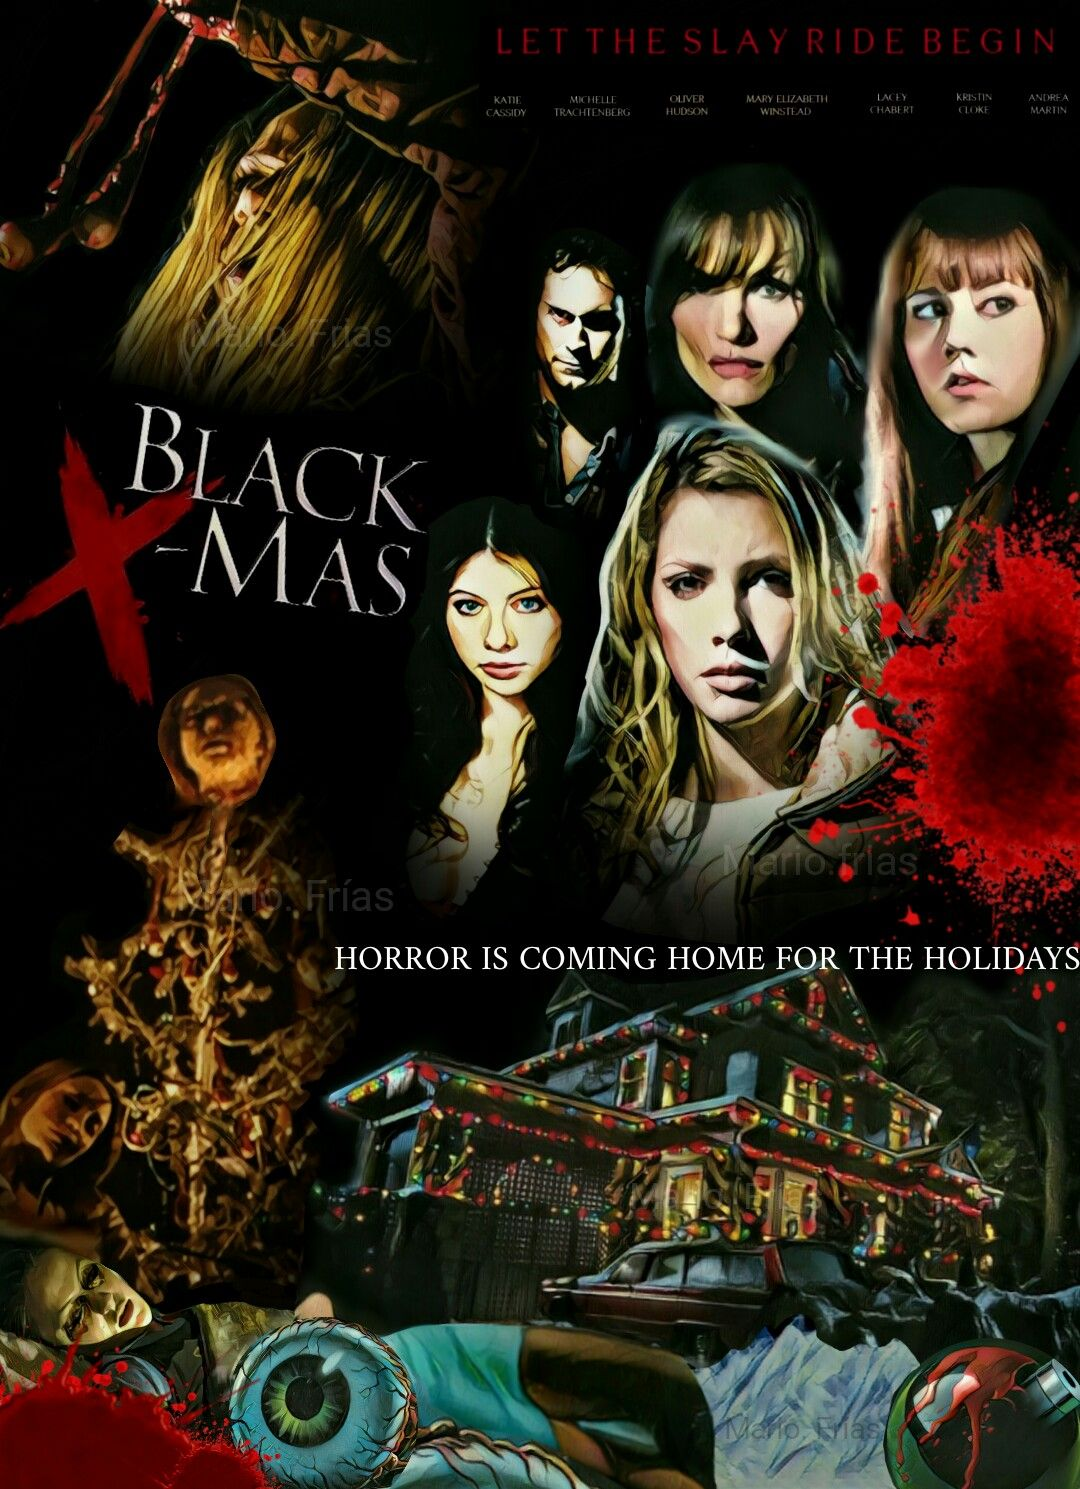 black christmas 2006 horror movie slasher fan made by mario frias - Black Christmas Movie